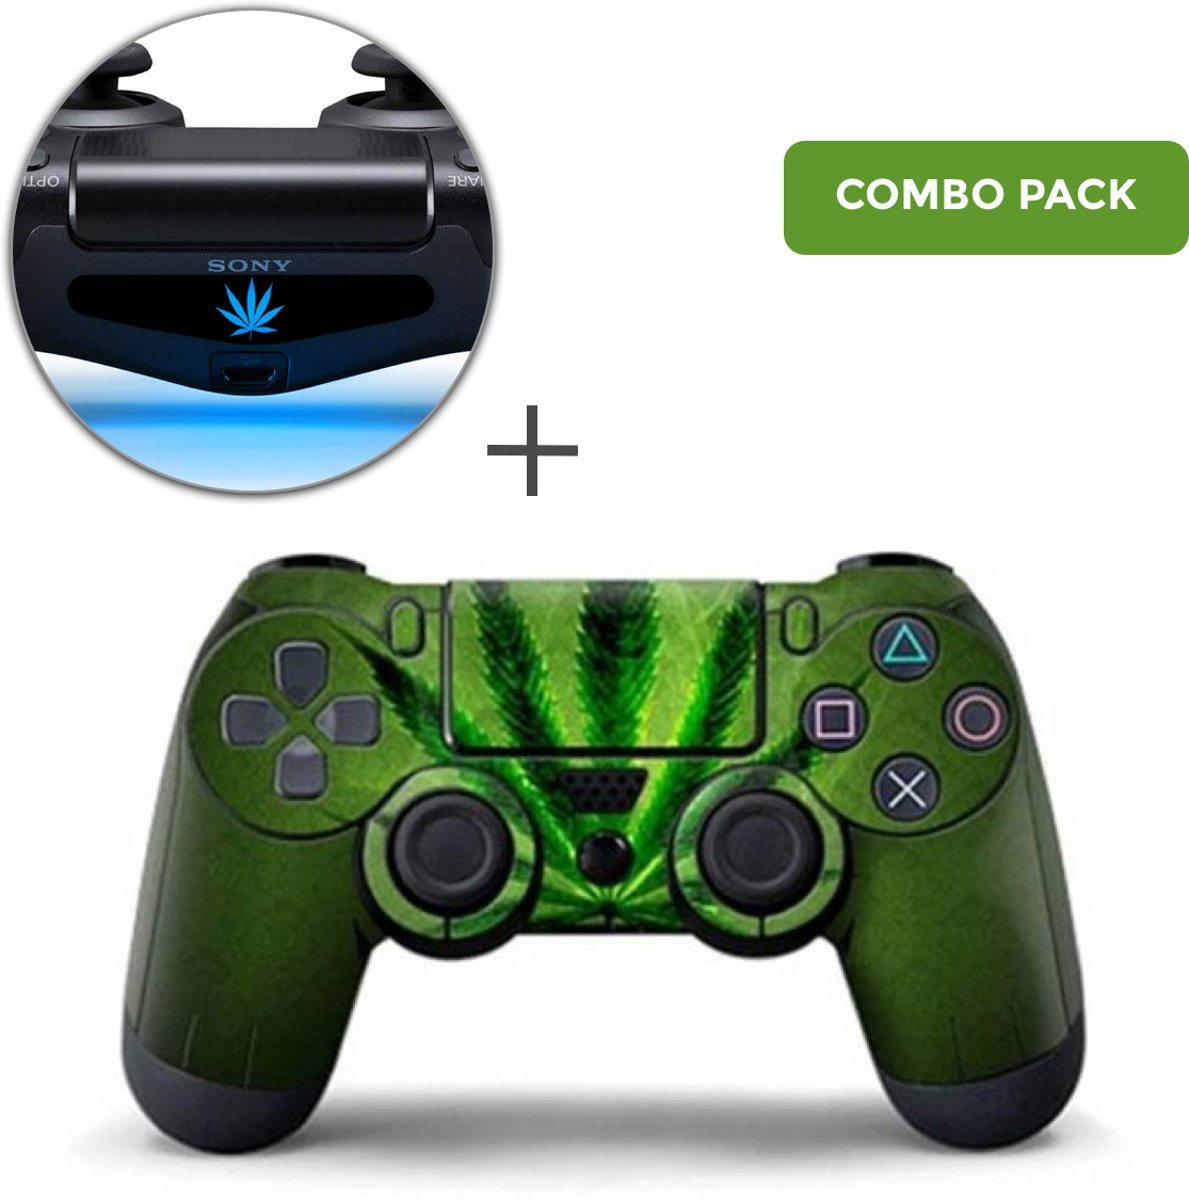 Weed 420 Combo Pack - PS4 Controller Skins PlayStation Stickers